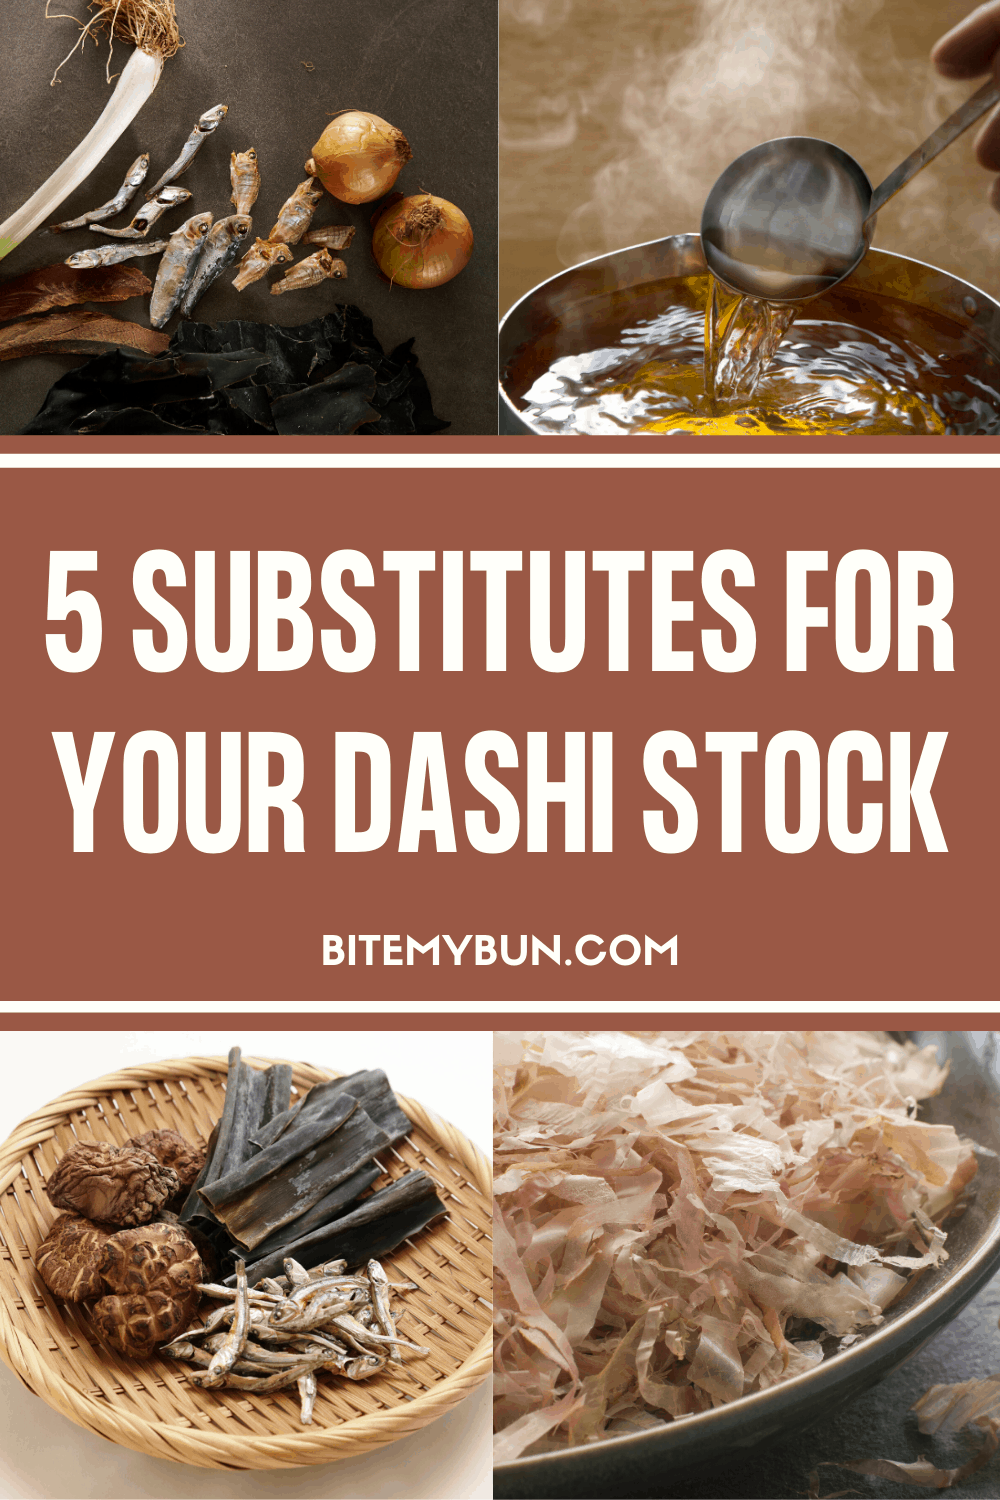 5 Dashi Stock Substitutes